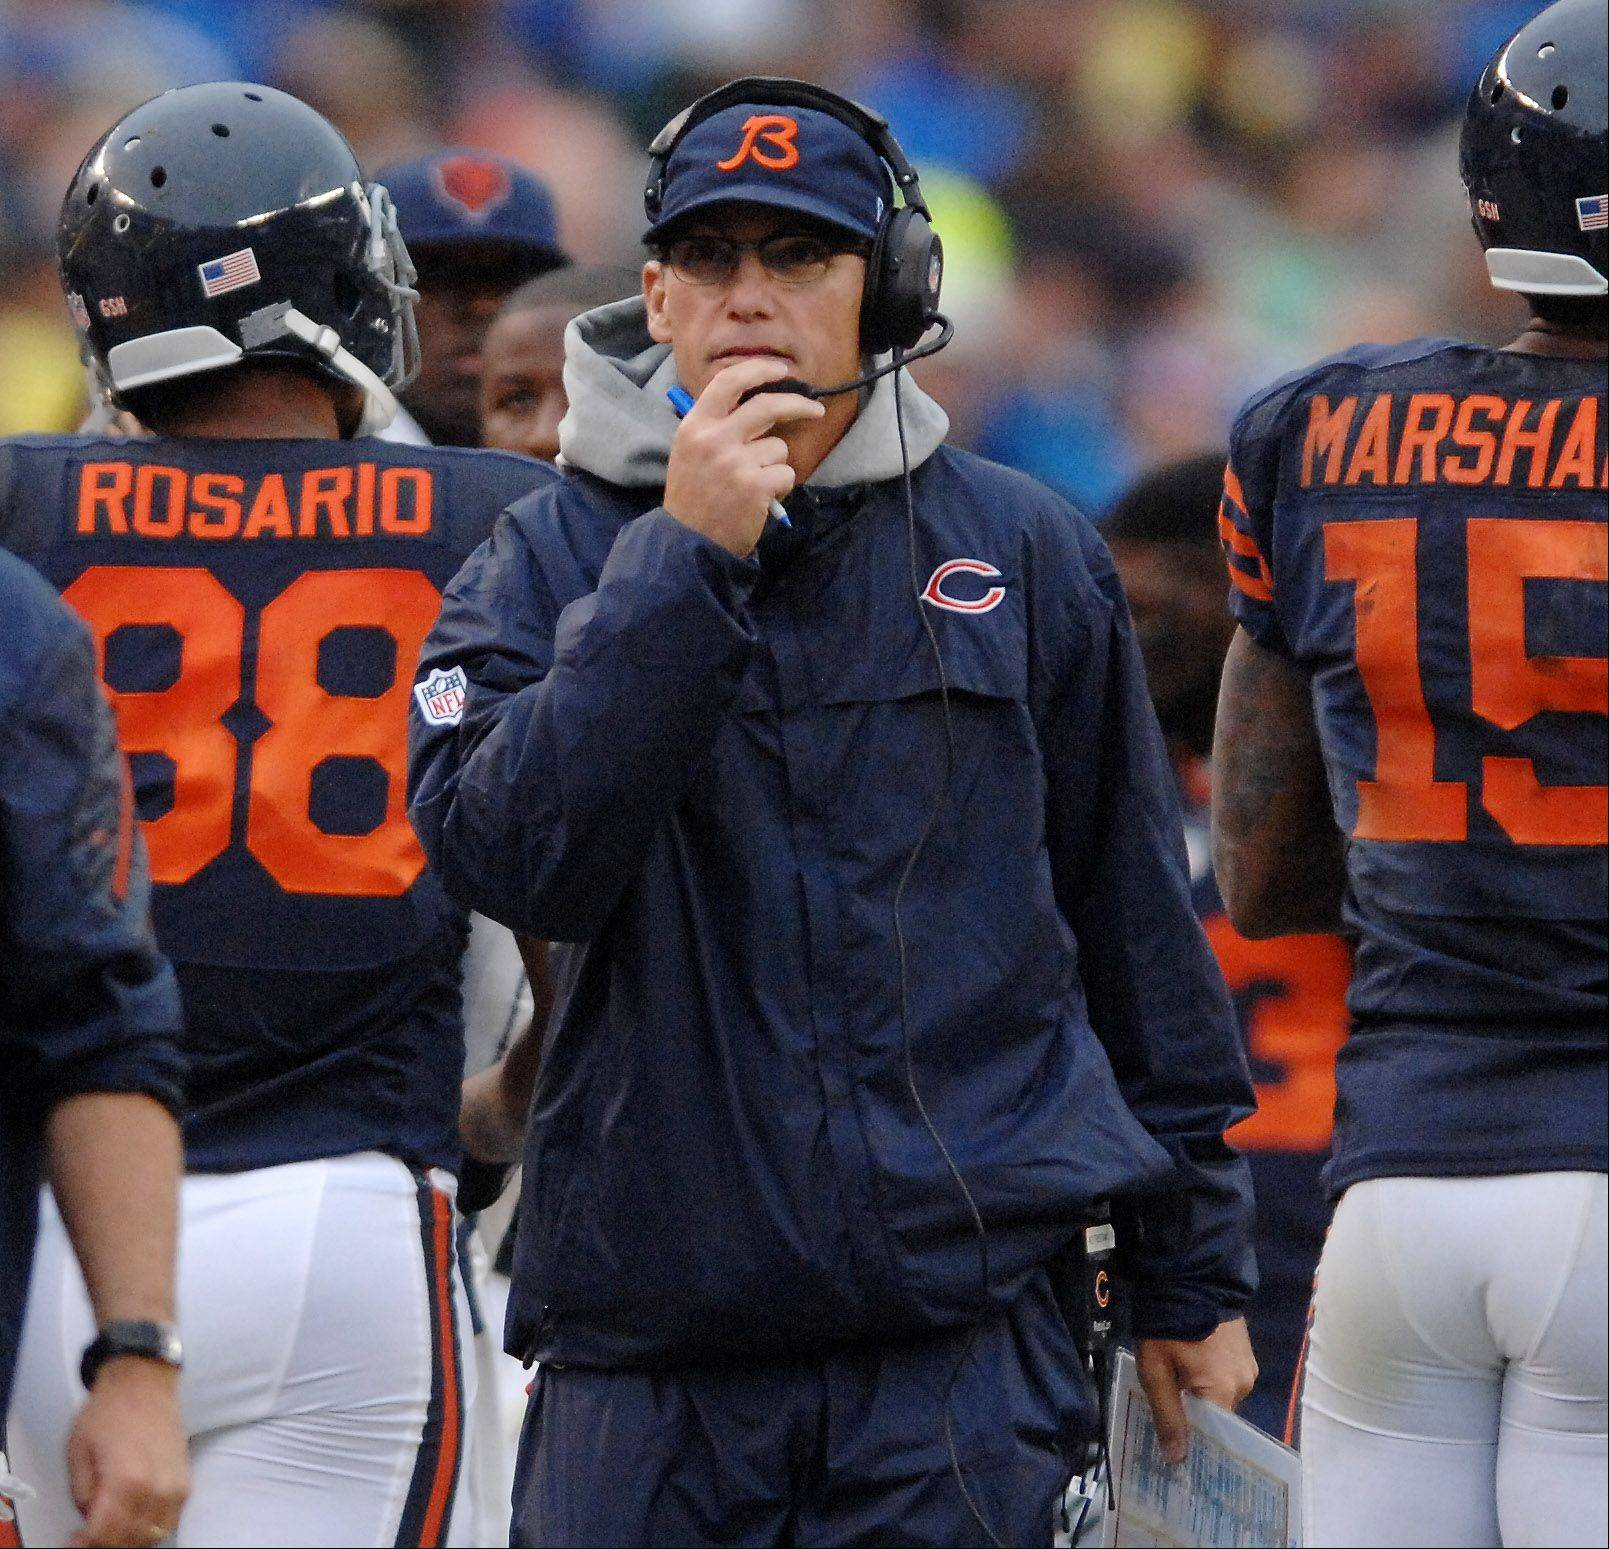 Bears coach Marc Trestman has been busy this week figuring out ways to deal with the Pittsburgh Steelers' 3-4 defense.